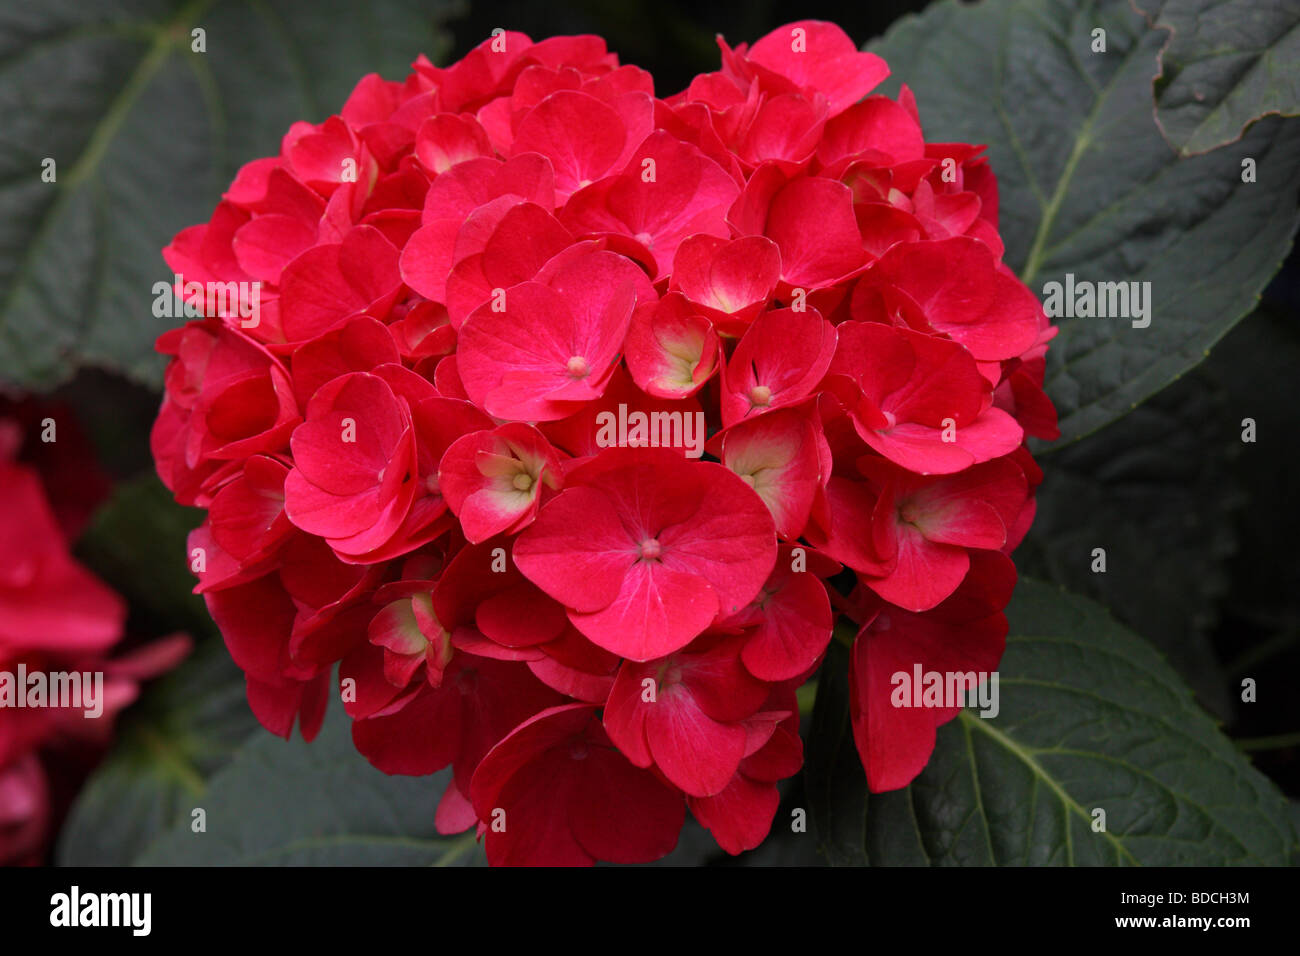 Red Hydrangea High Resolution Stock Photography And Images Alamy